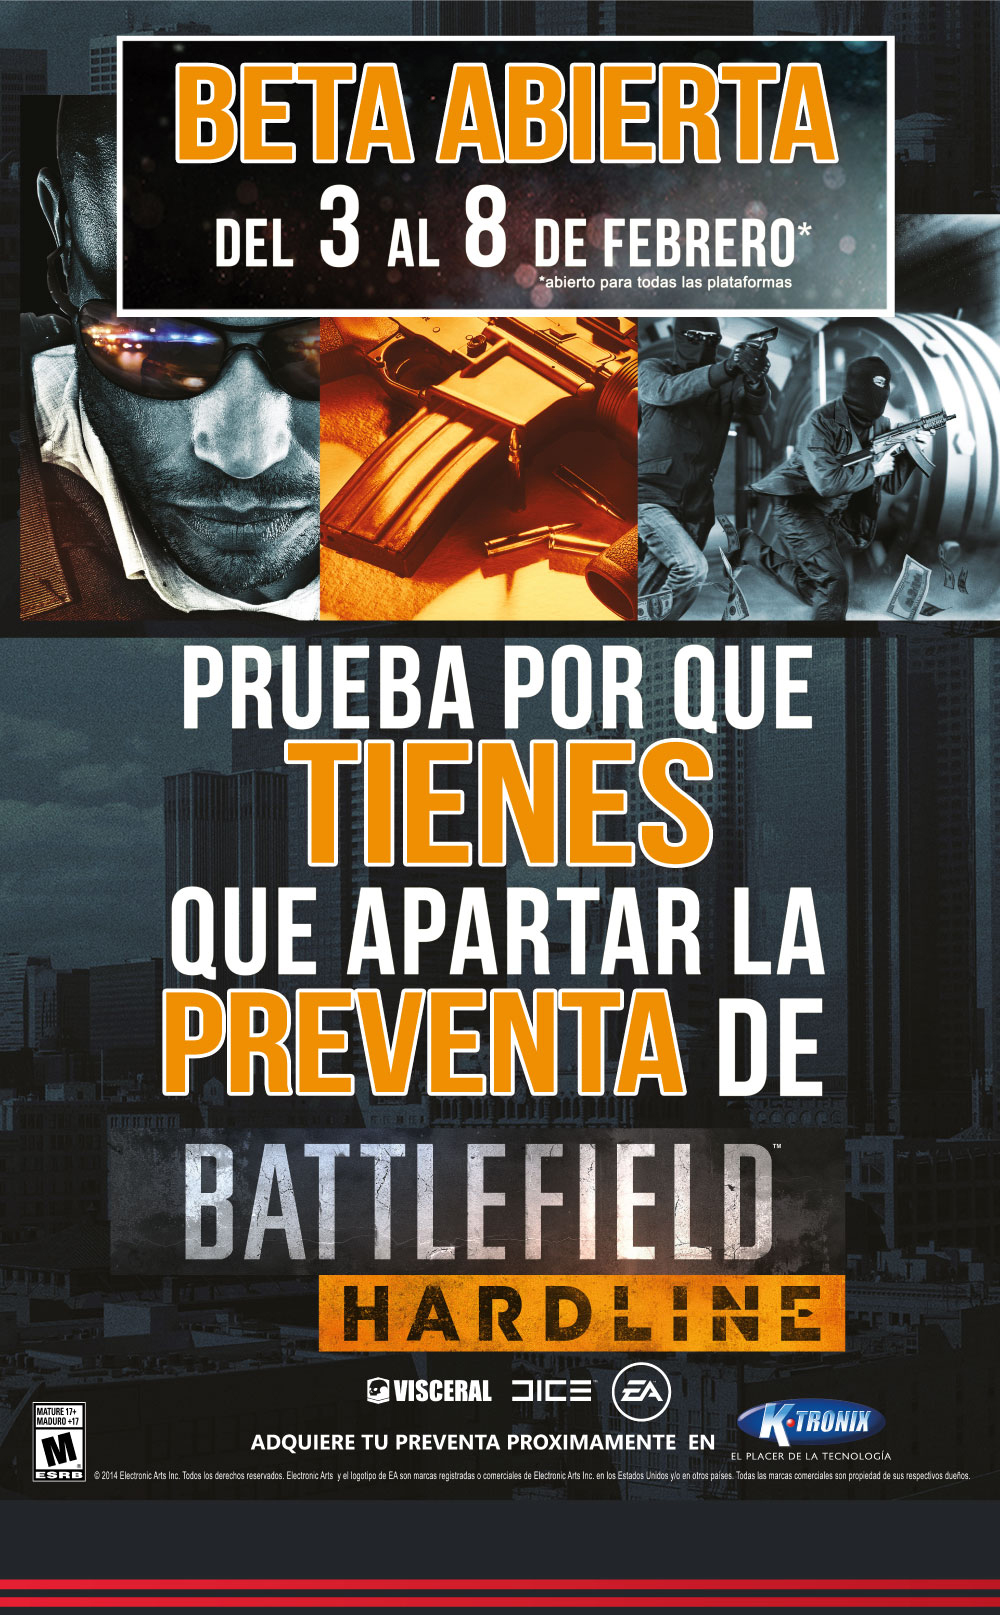 Battlefield Hardline Descarga la Beta